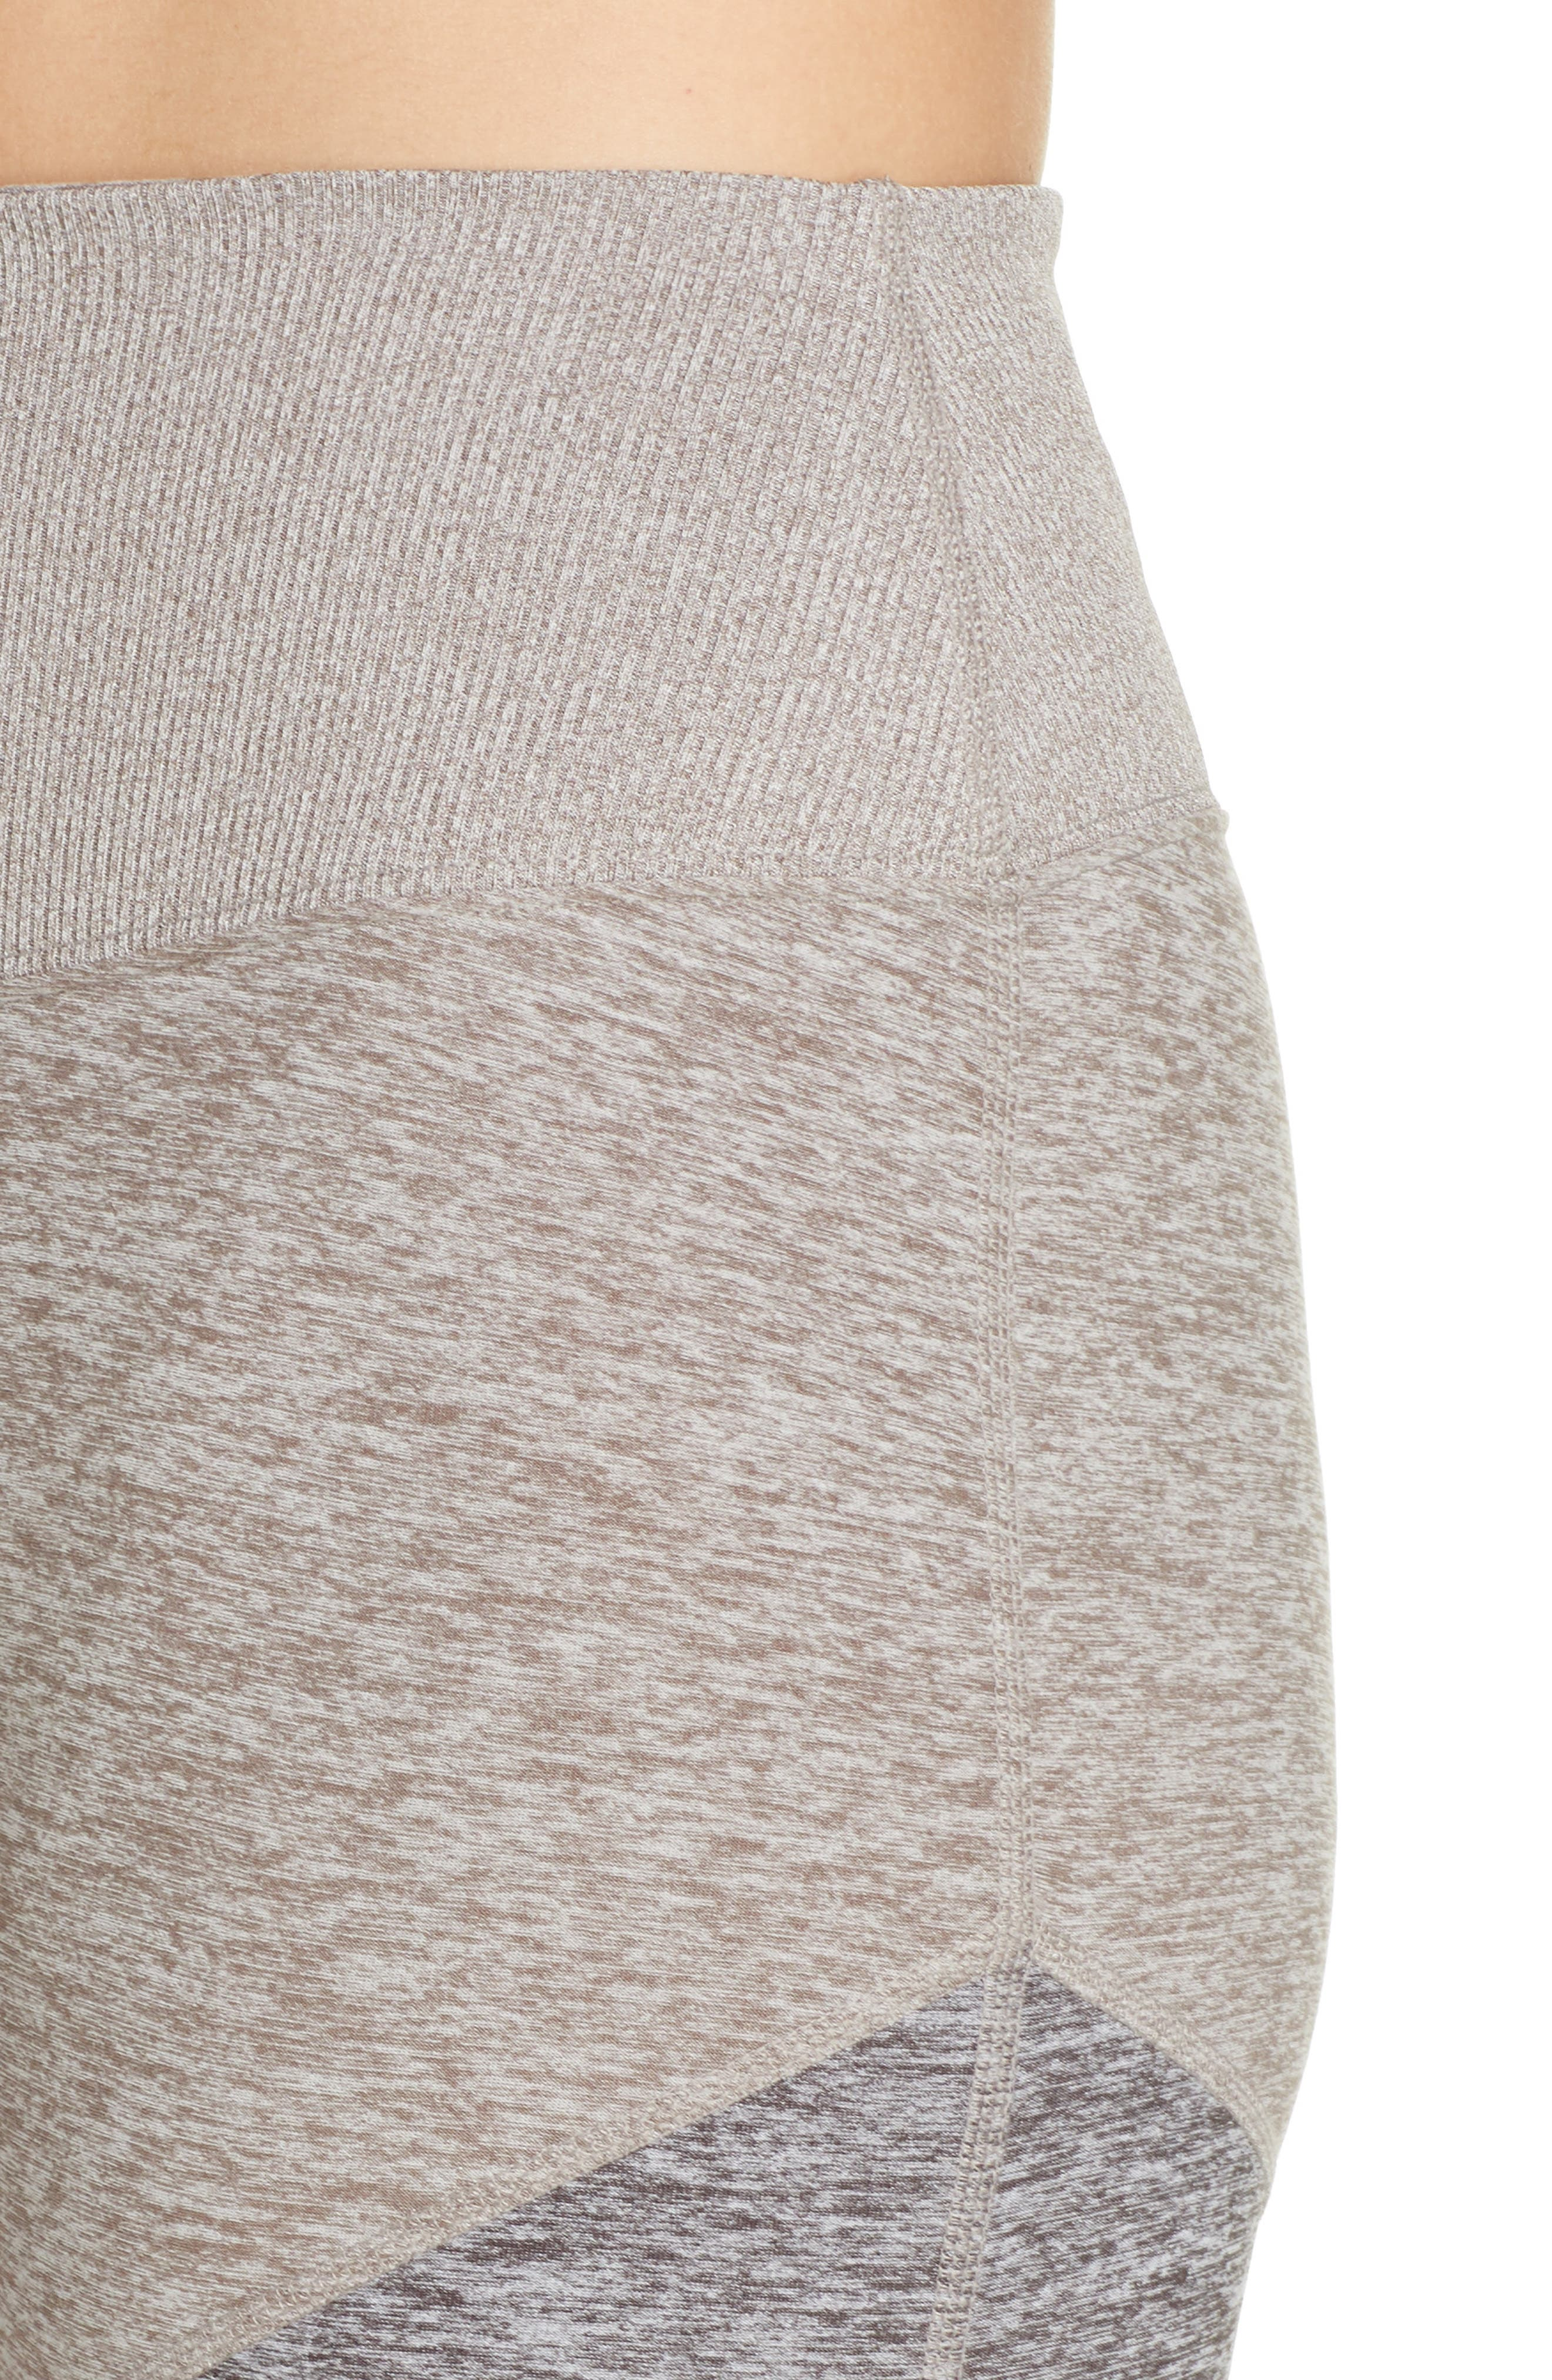 ALO, Sheila Alosoft High Waist Leggings, Alternate thumbnail 5, color, GRAVEL HEATHER/ DOVE GREY